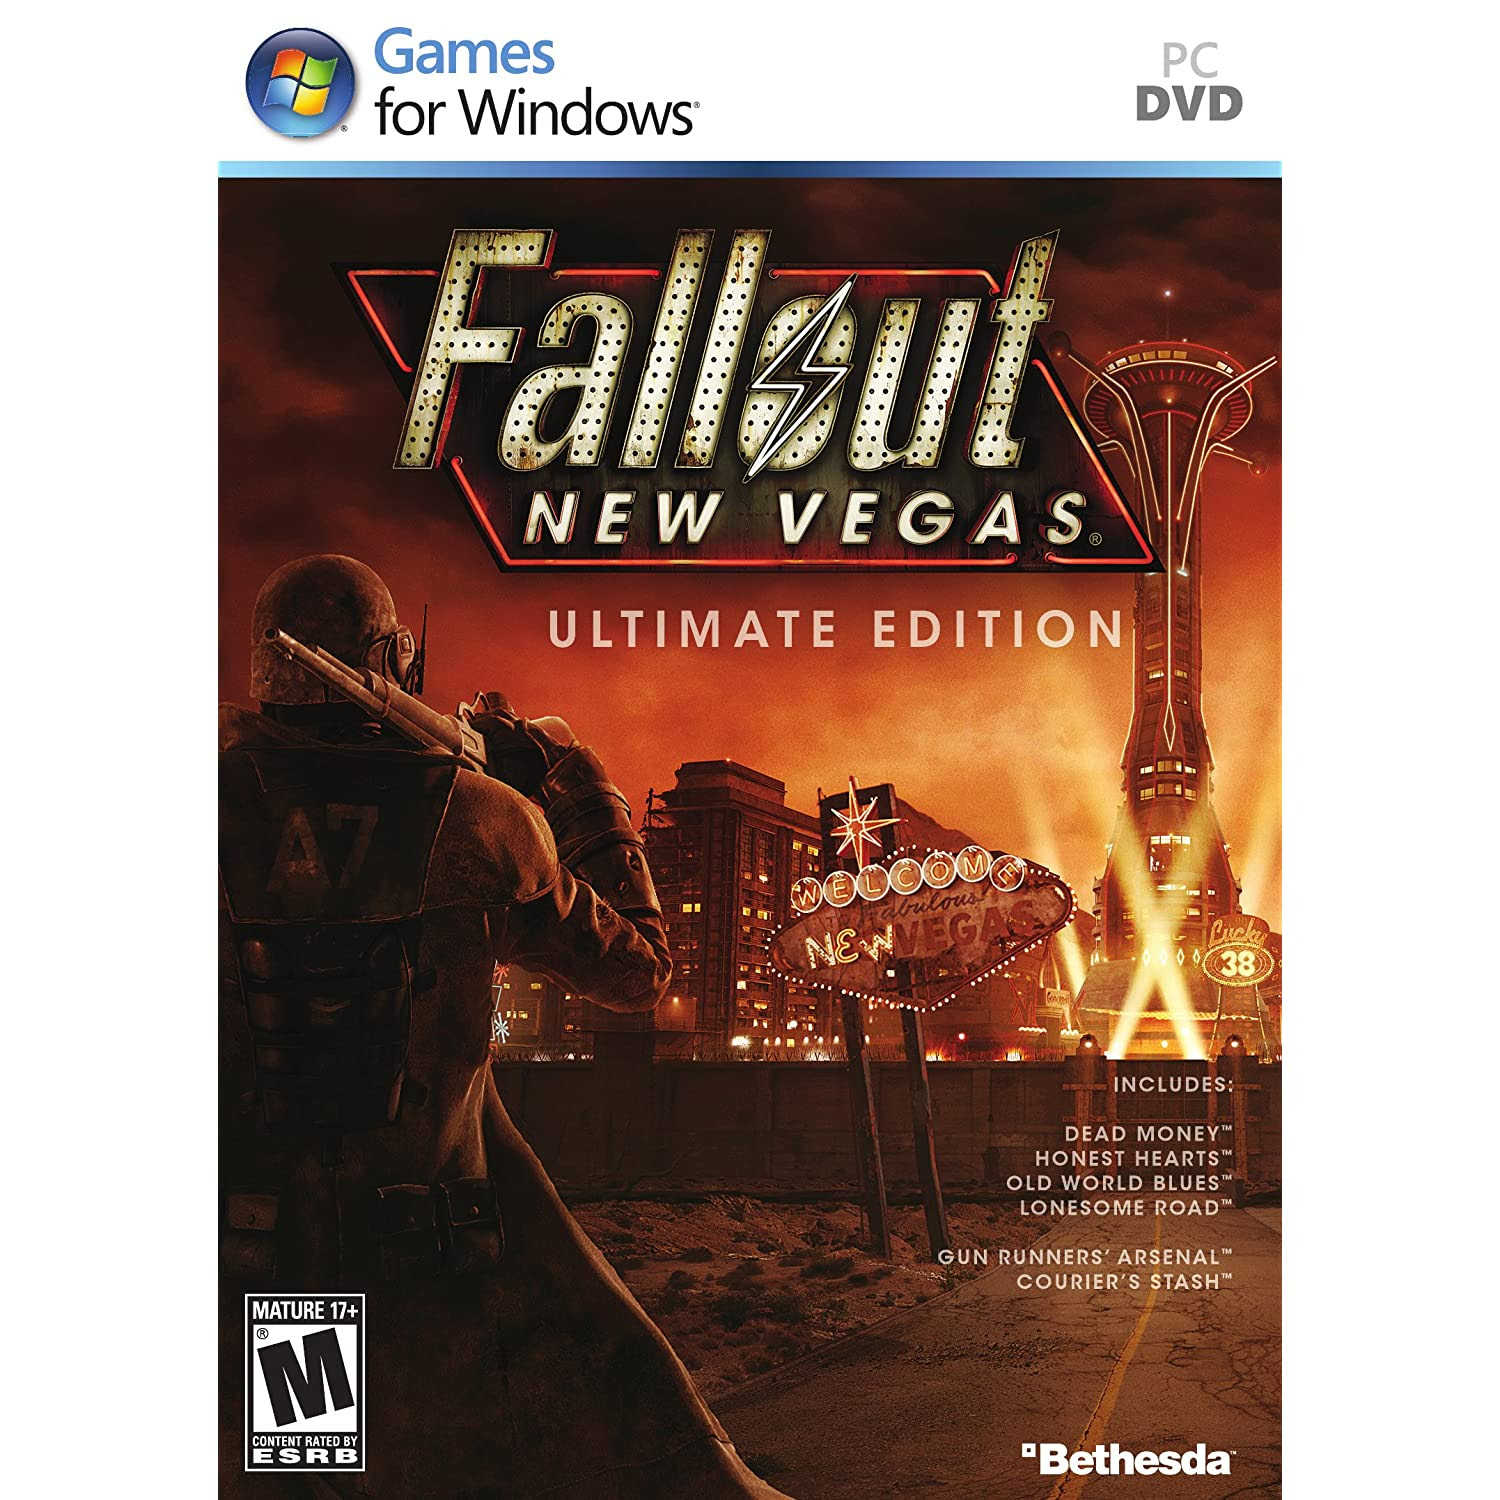 Fallout: New Vegas Ultimate Edition (360, PC, PS3) Ultimate Edition Announcement - Header